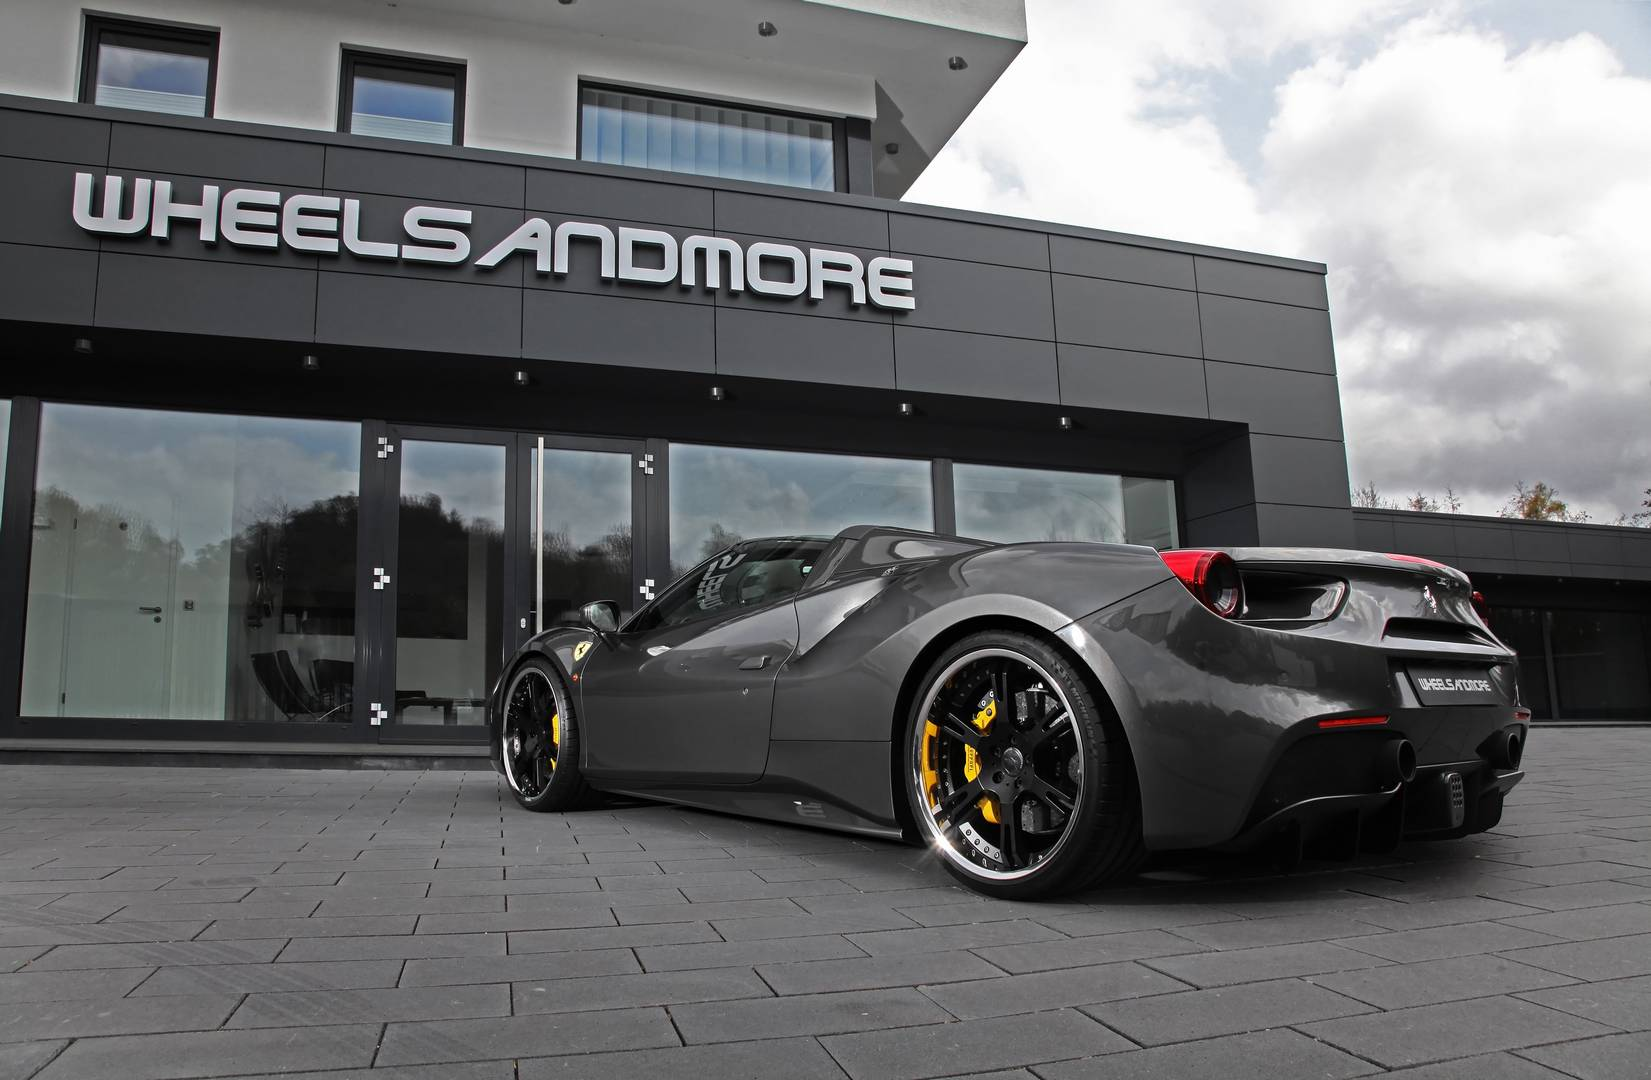 Ferrari-488-Spider-by-Wheelsandmore-1